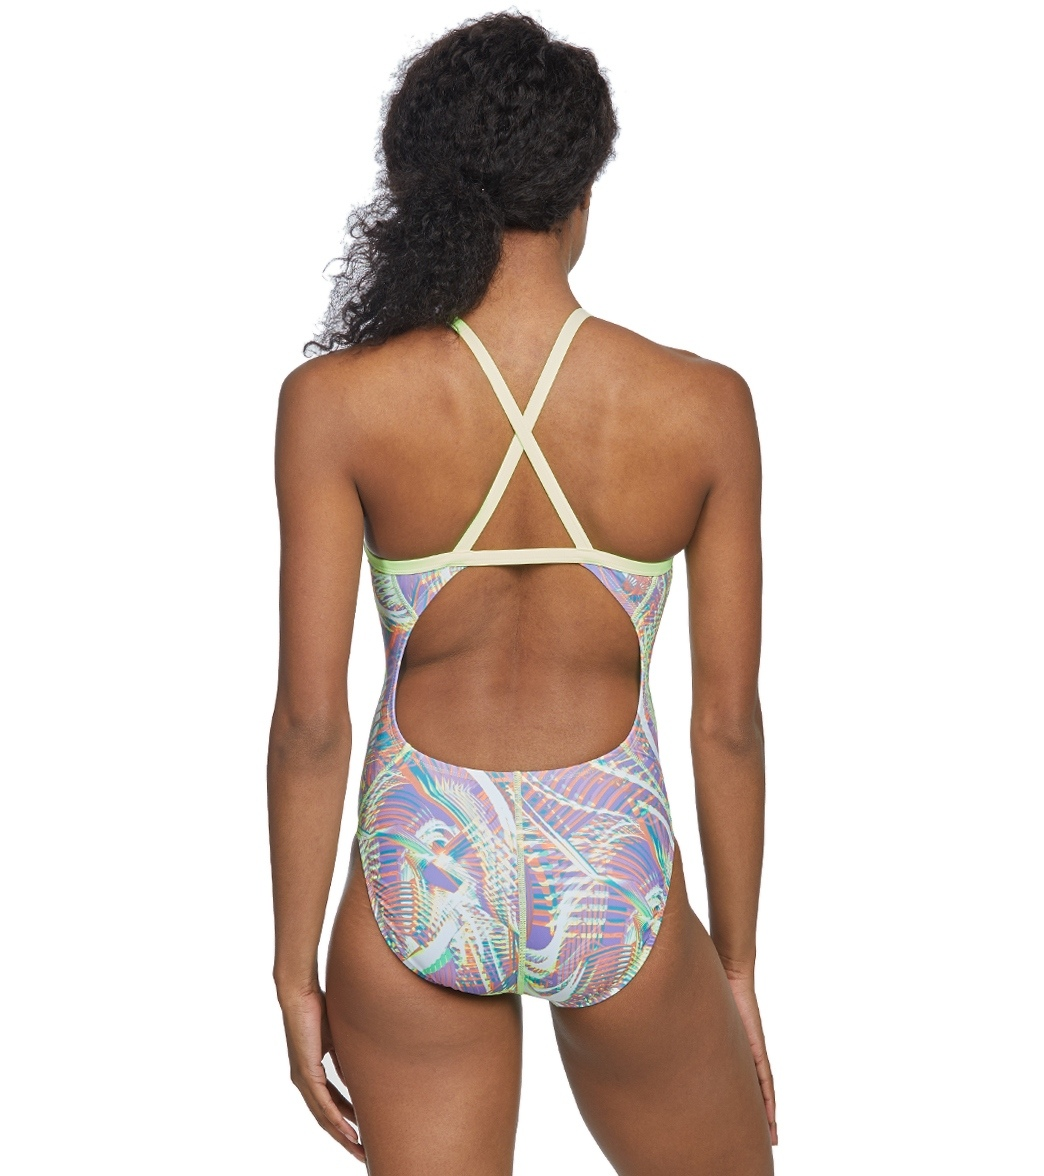 20978feb16 Nike Women s Whirl Crosssback One Piece Swimsuit at SwimOutlet.com ...